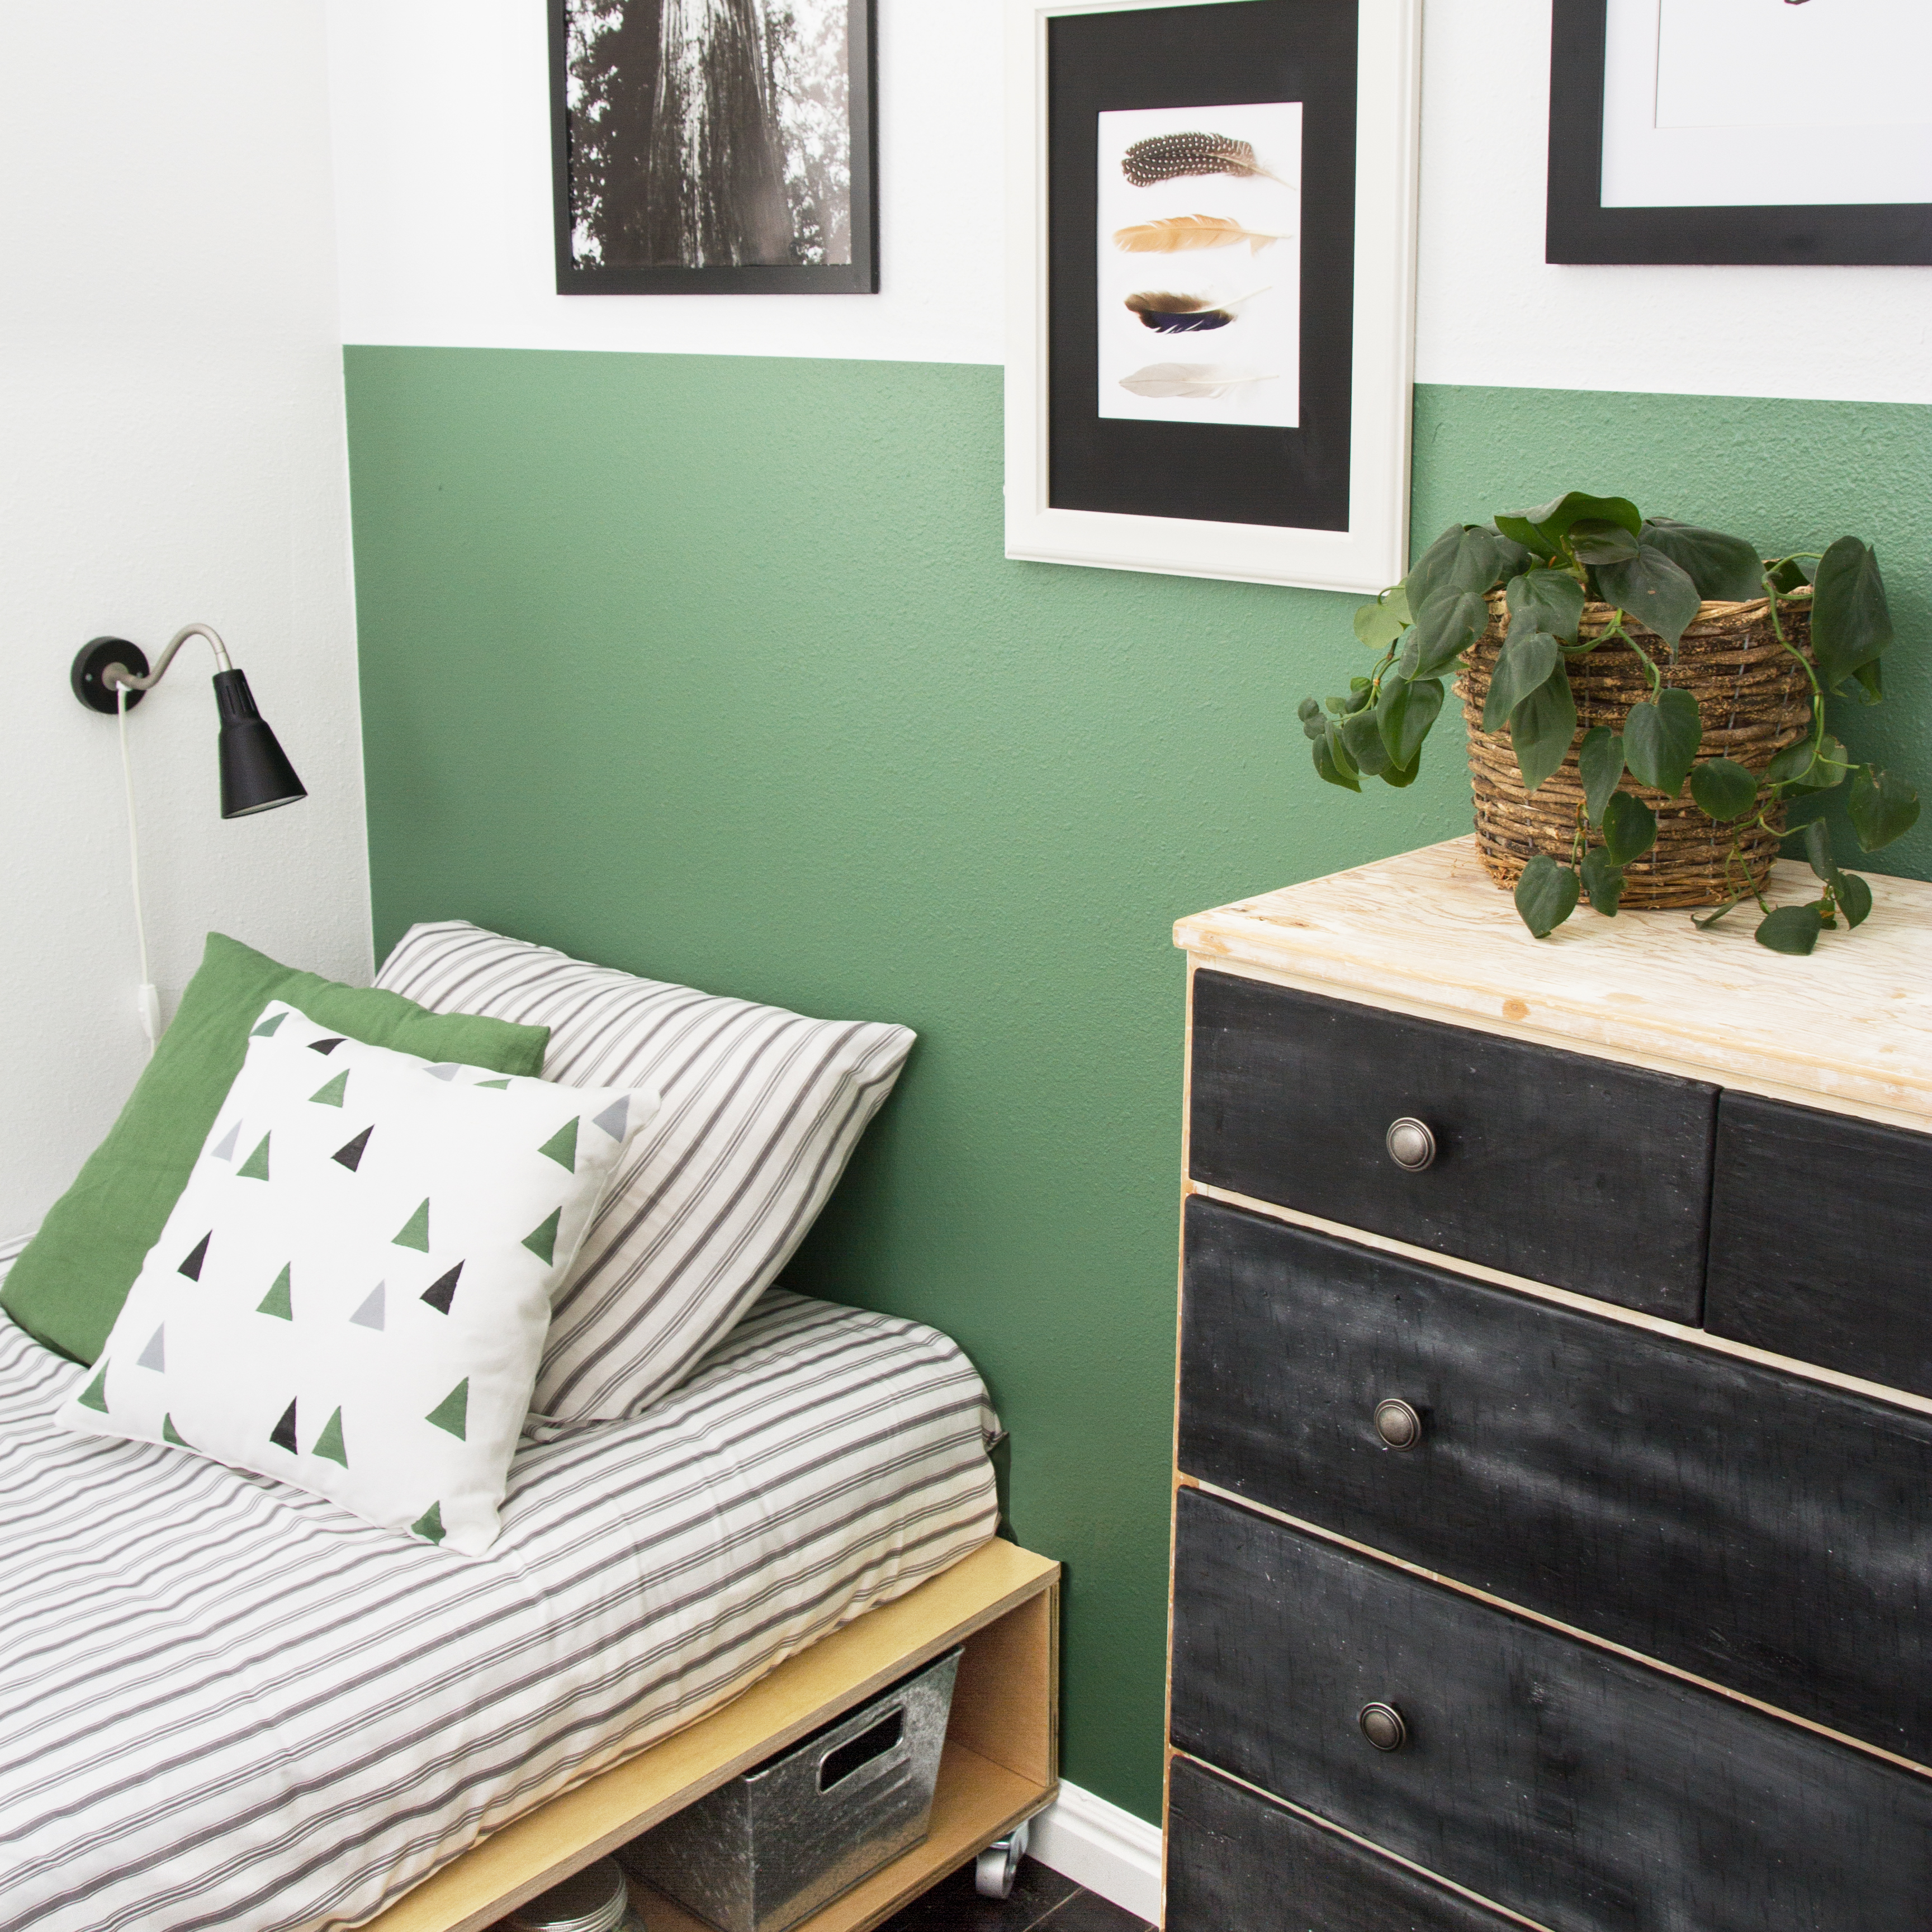 Vintage Green Boy Room Makeover! - Stacy Risenmay